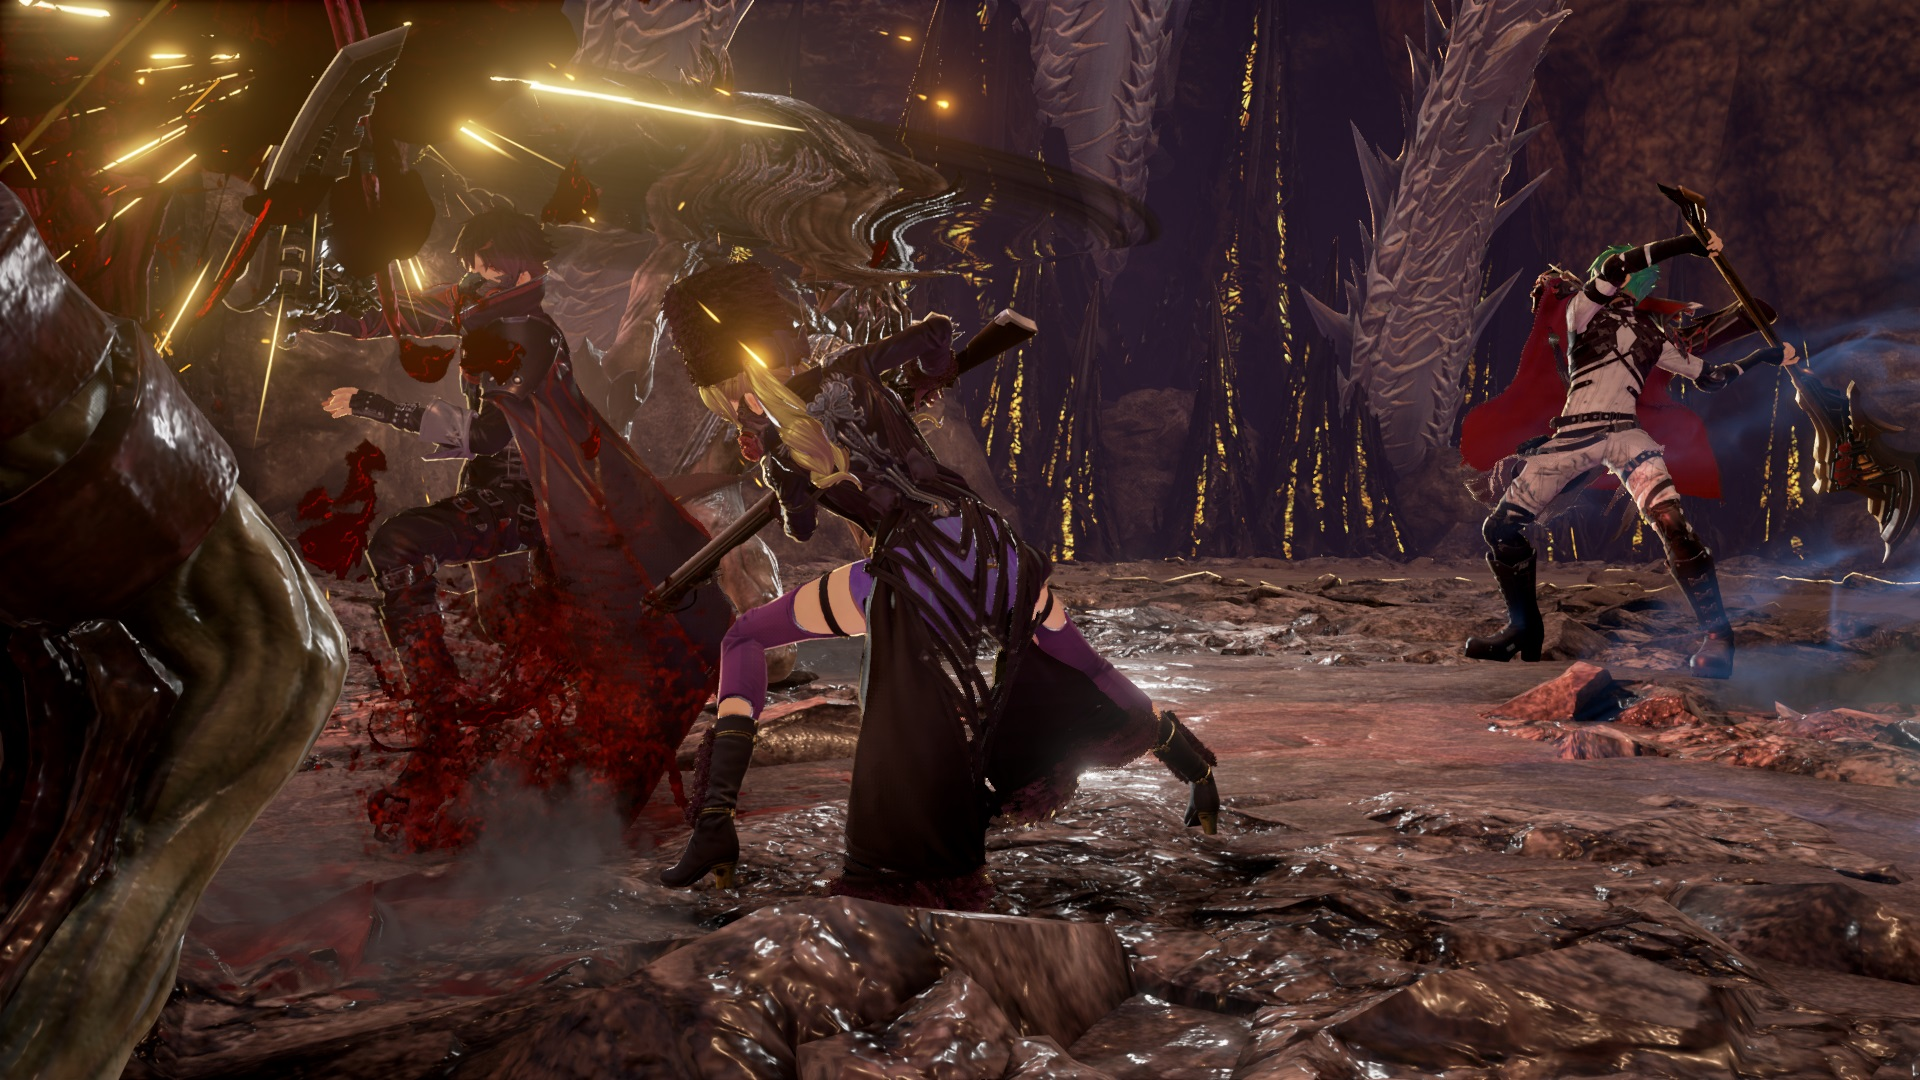 Latest Code Vein information shows how Io can accompany